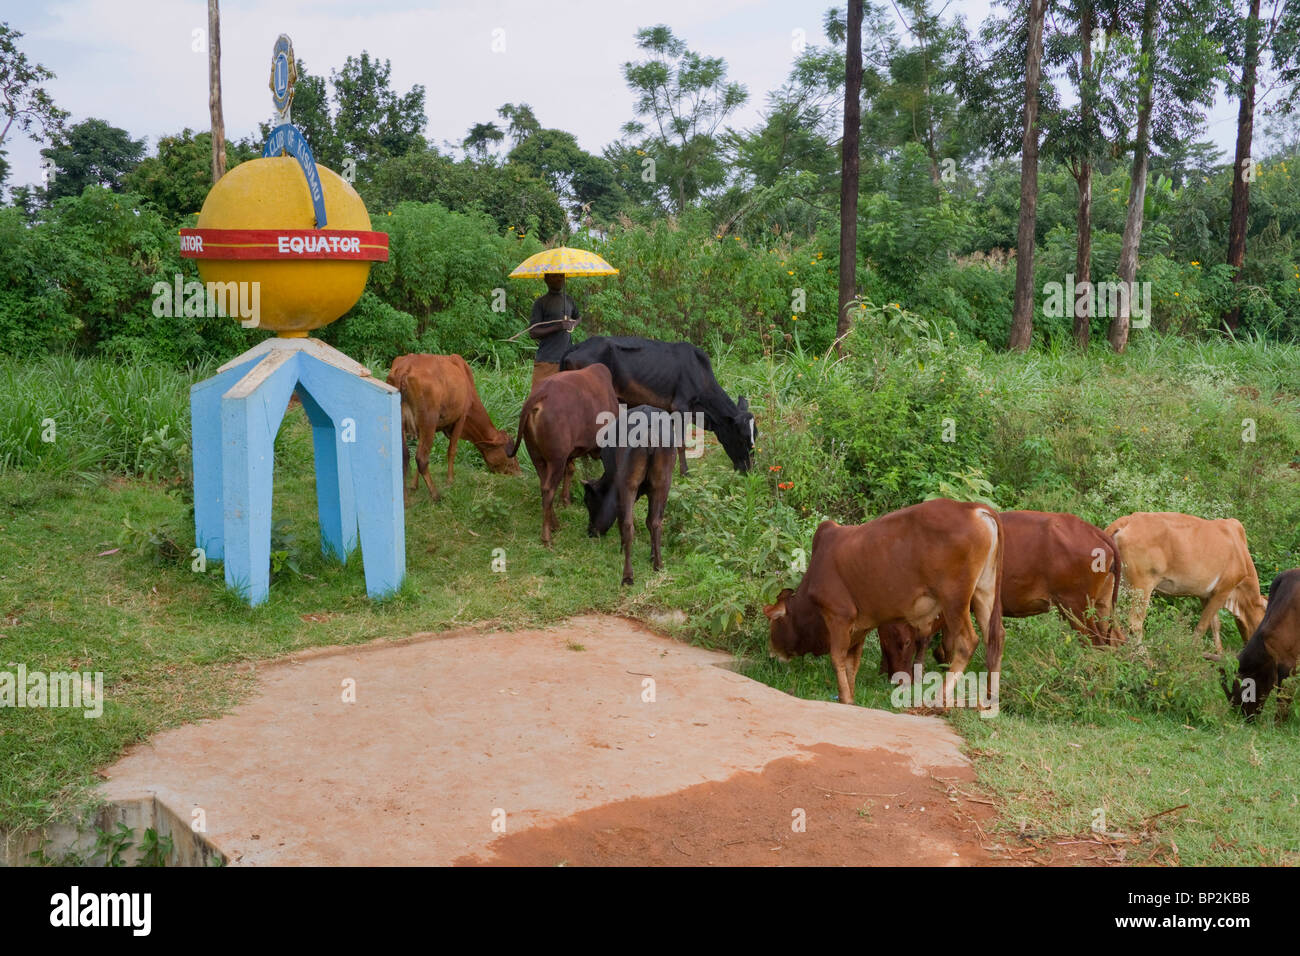 Equator sign on the side of the road in rural western Kenya. - Stock Image